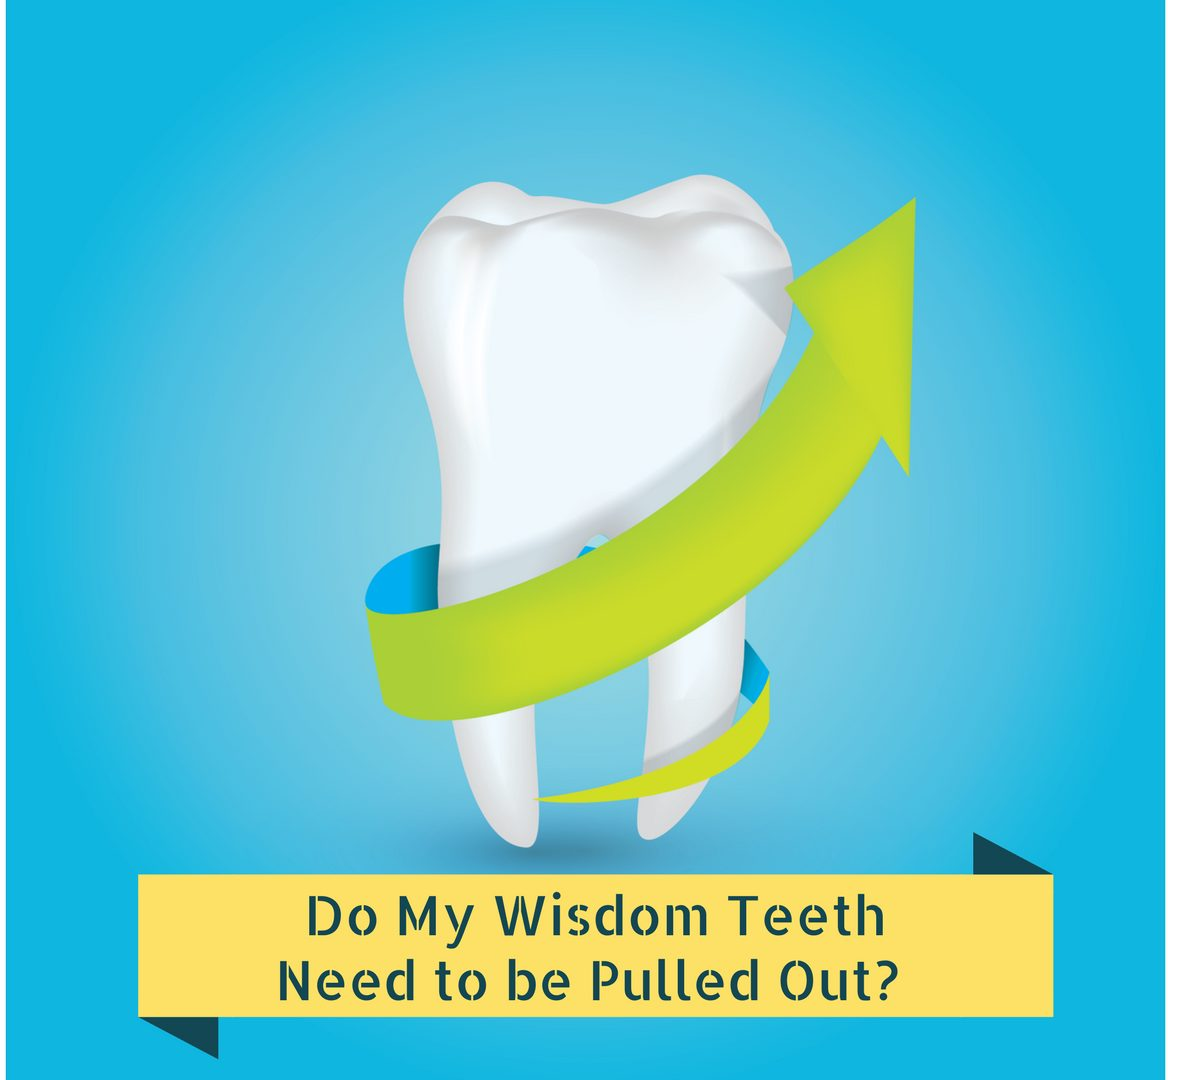 Do my wisdom teeth need to be taken out?